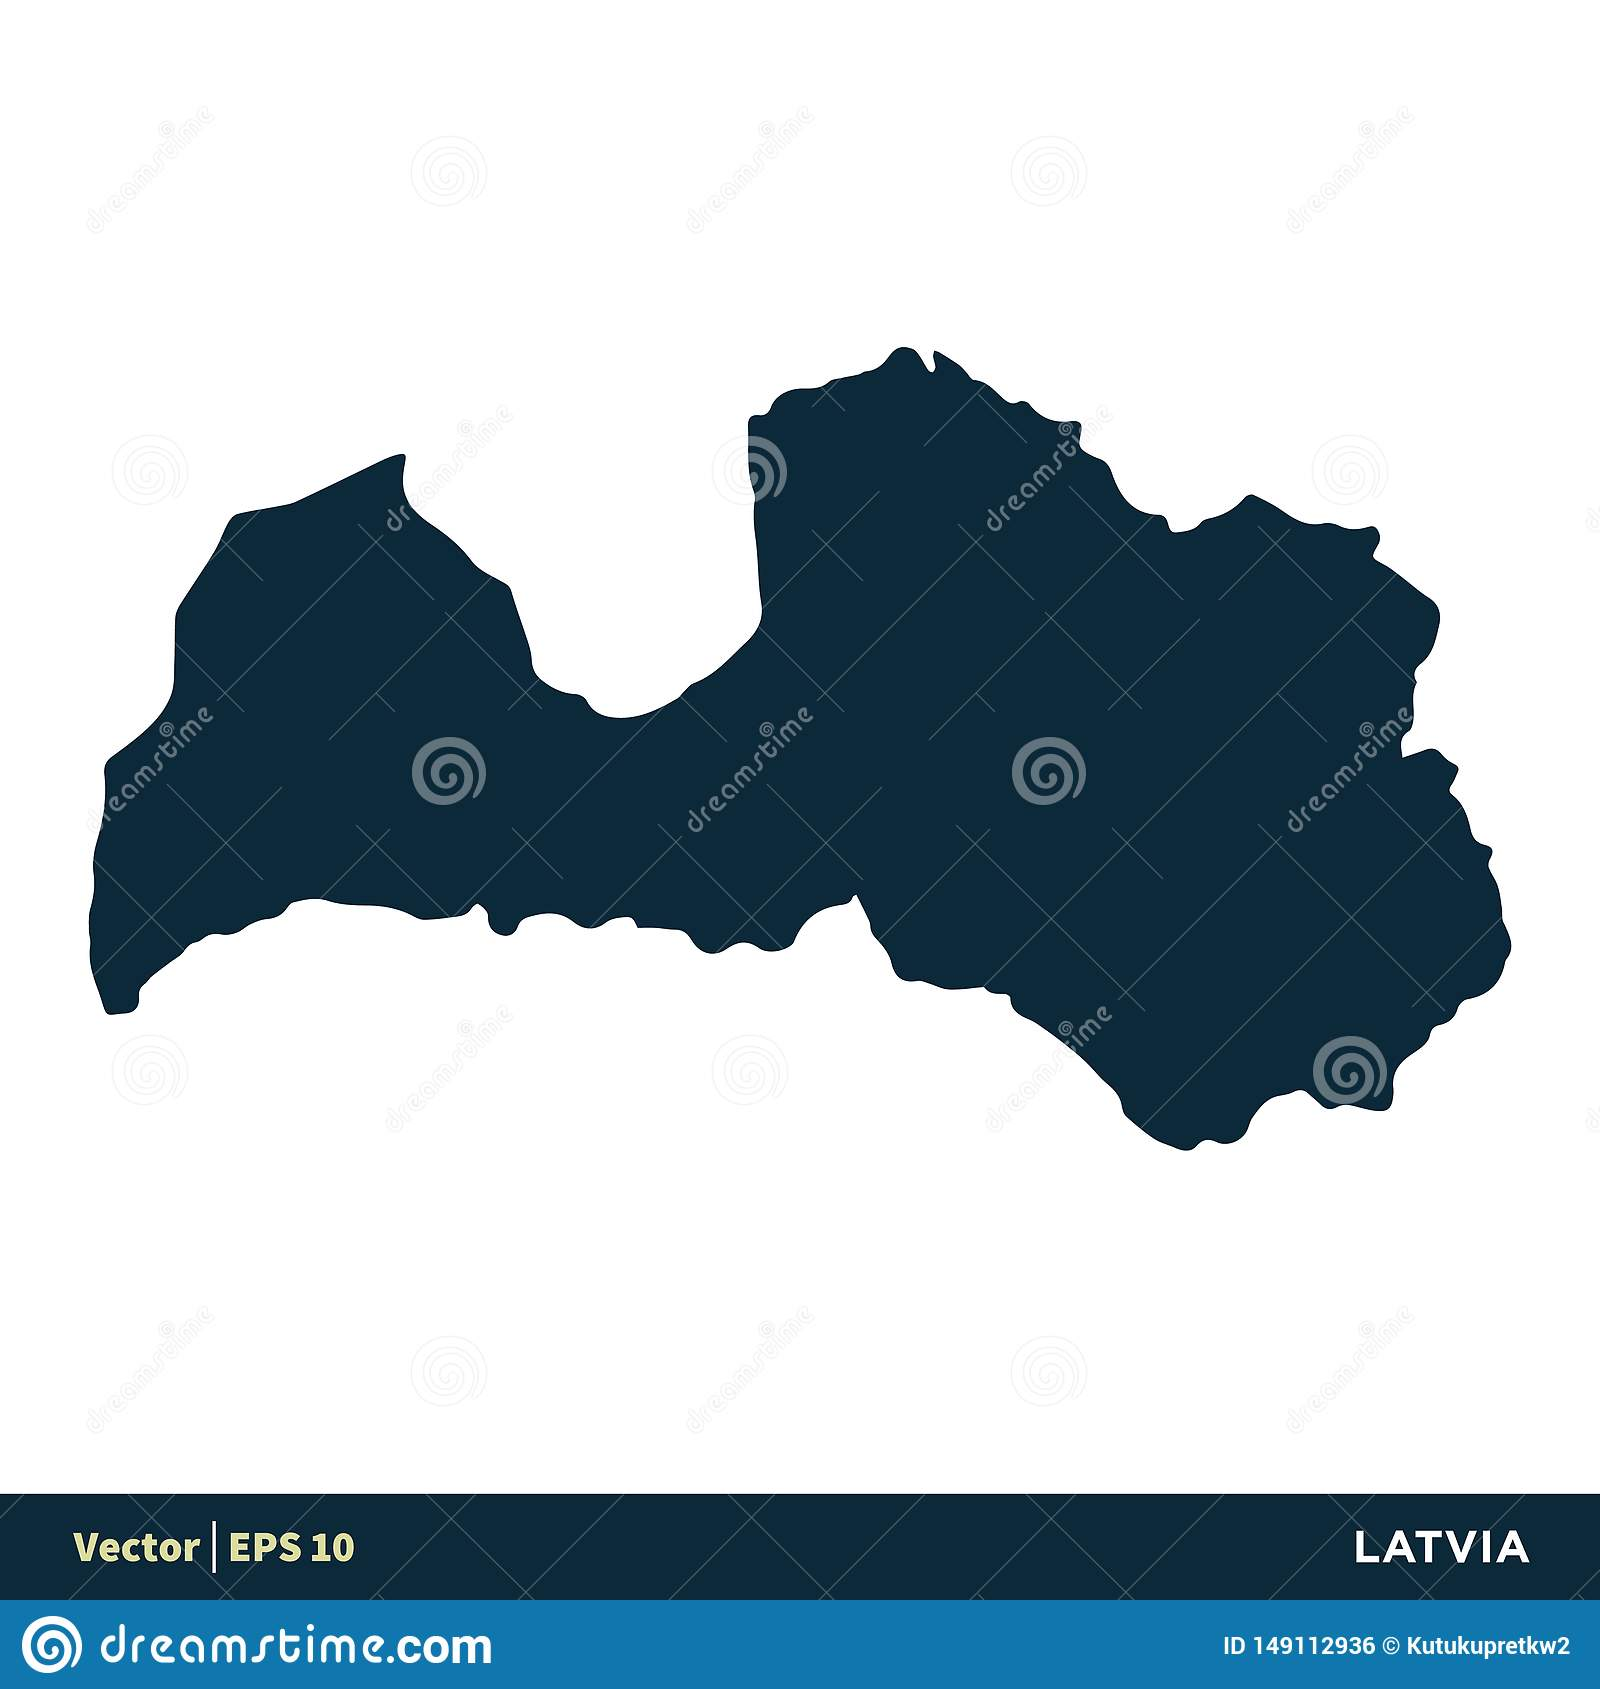 Picture of: Latvia Europe Countries Map Vector Icon Template Illustration Design Vector Eps 10 Stock Vector Illustration Of European Border 149112936